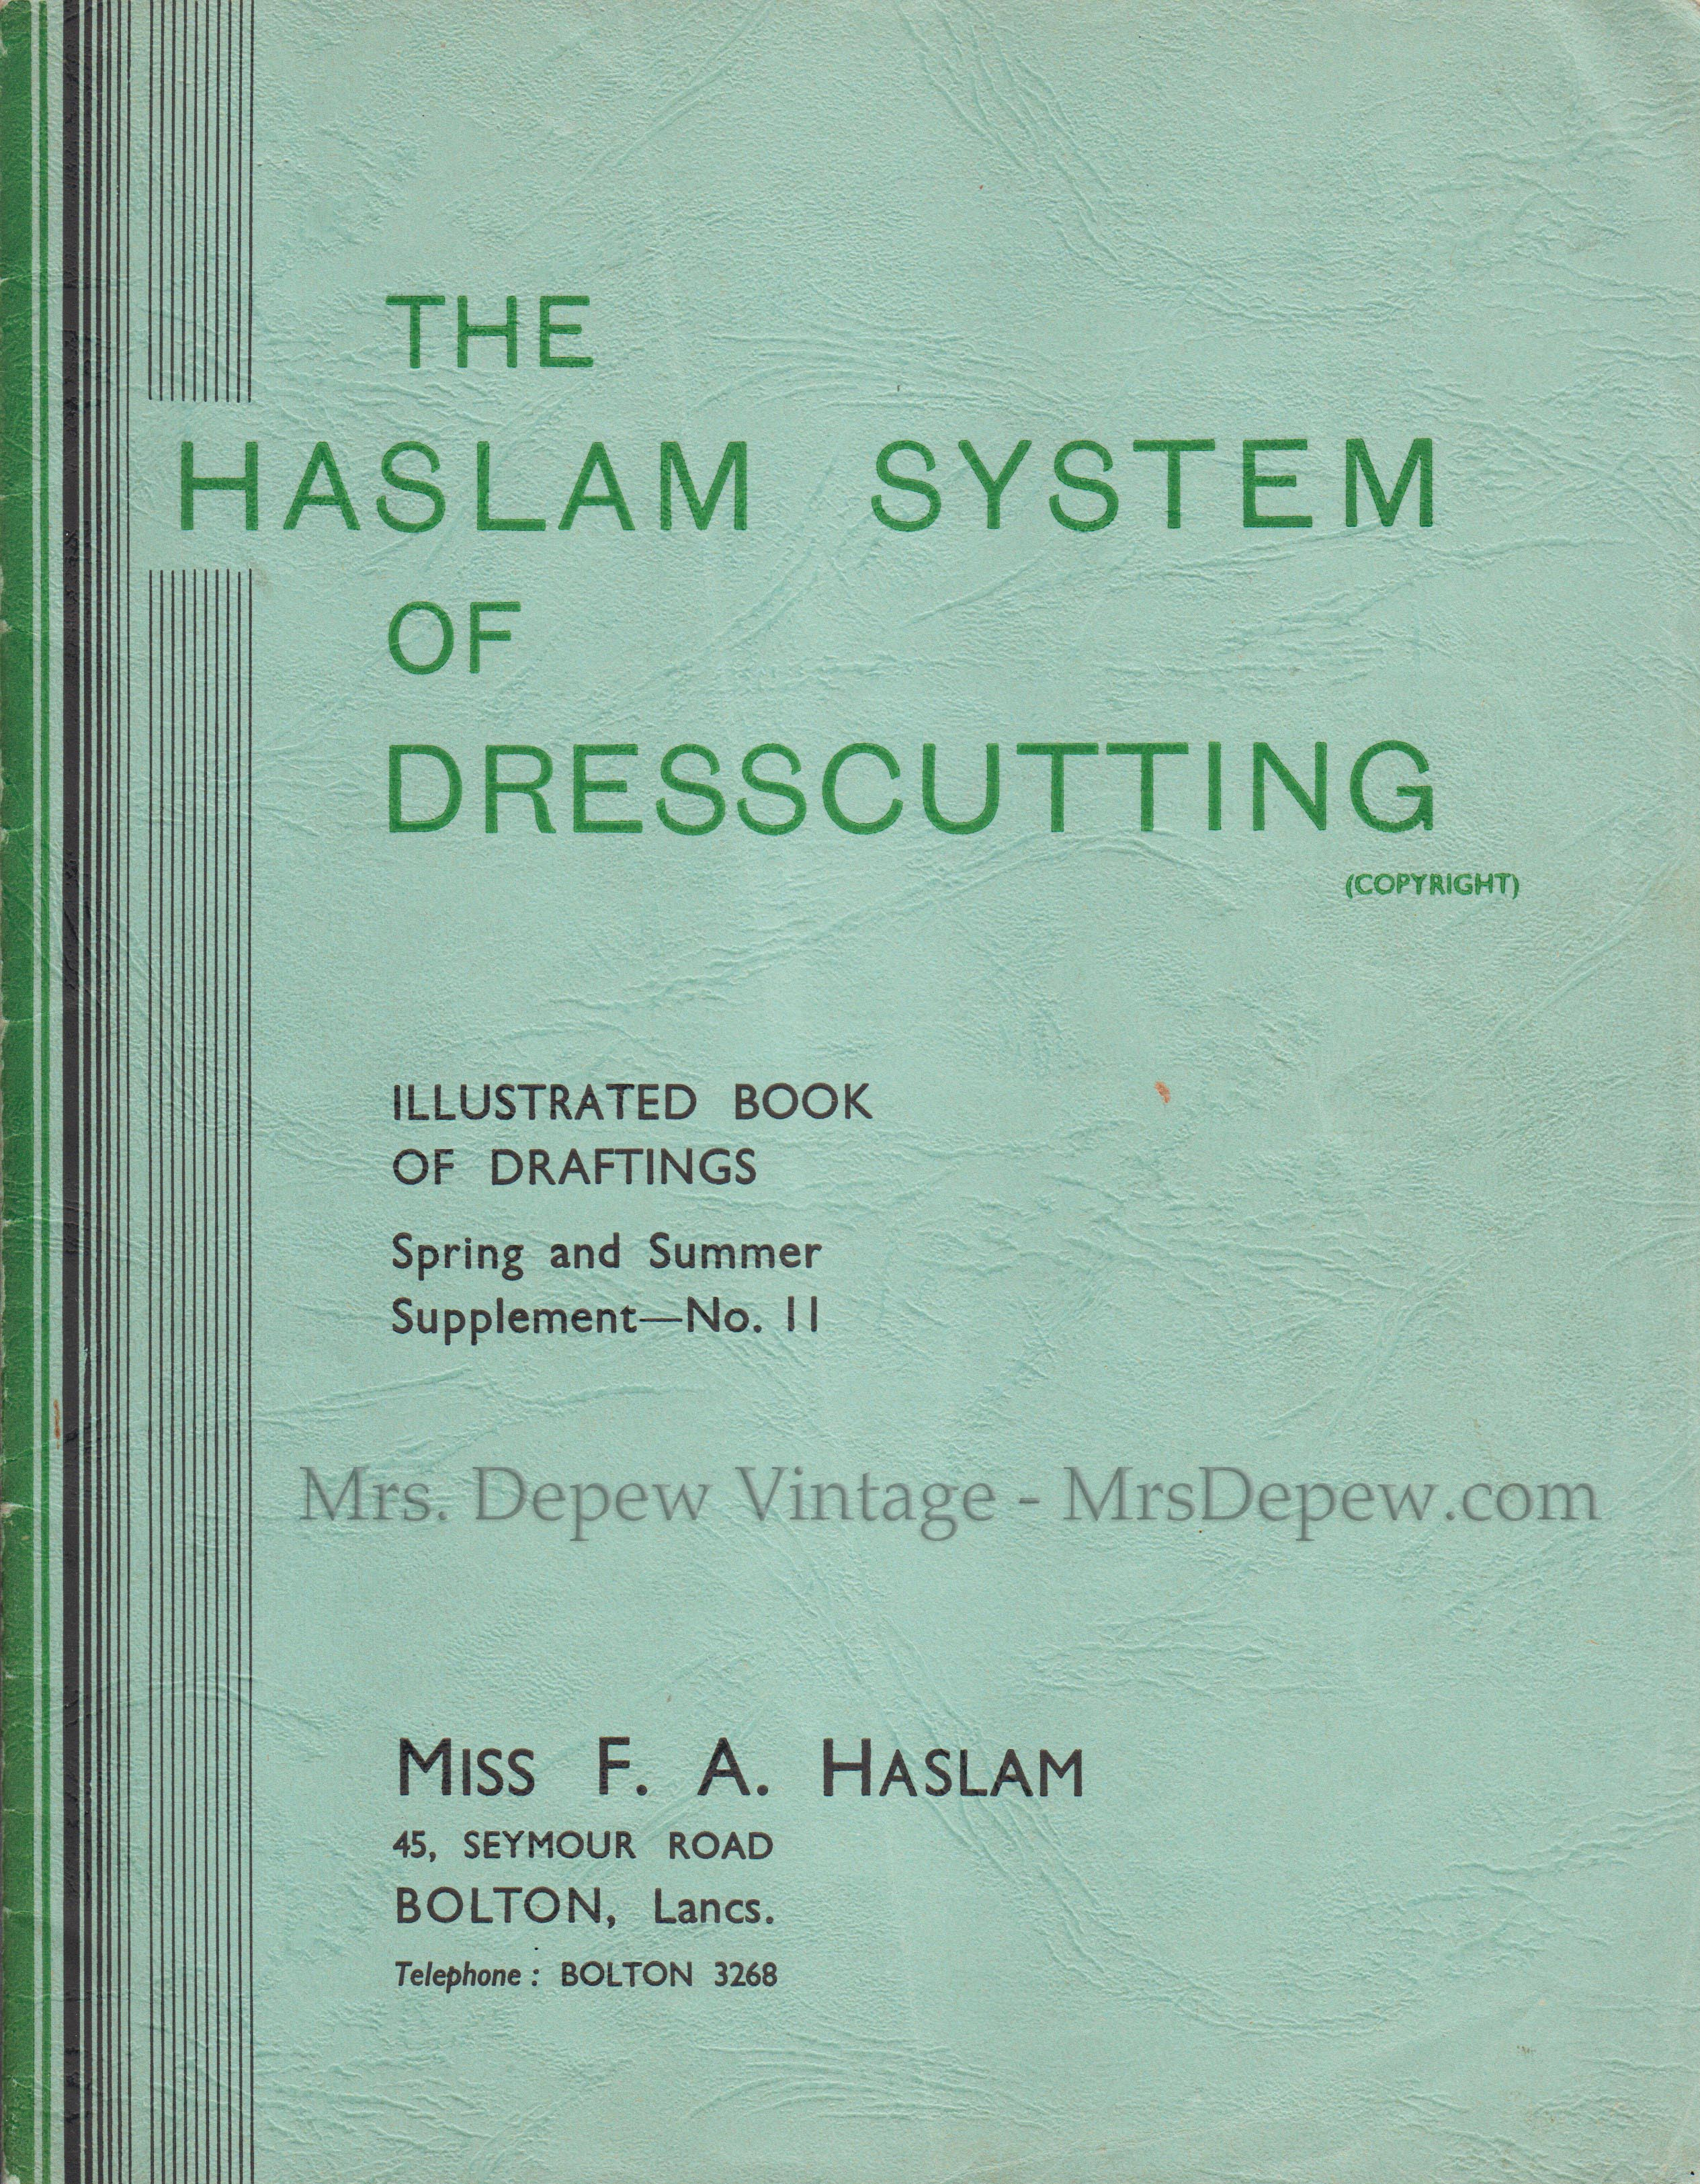 Haslam System of Dresscutting Spring and Summer Supplement No. 11